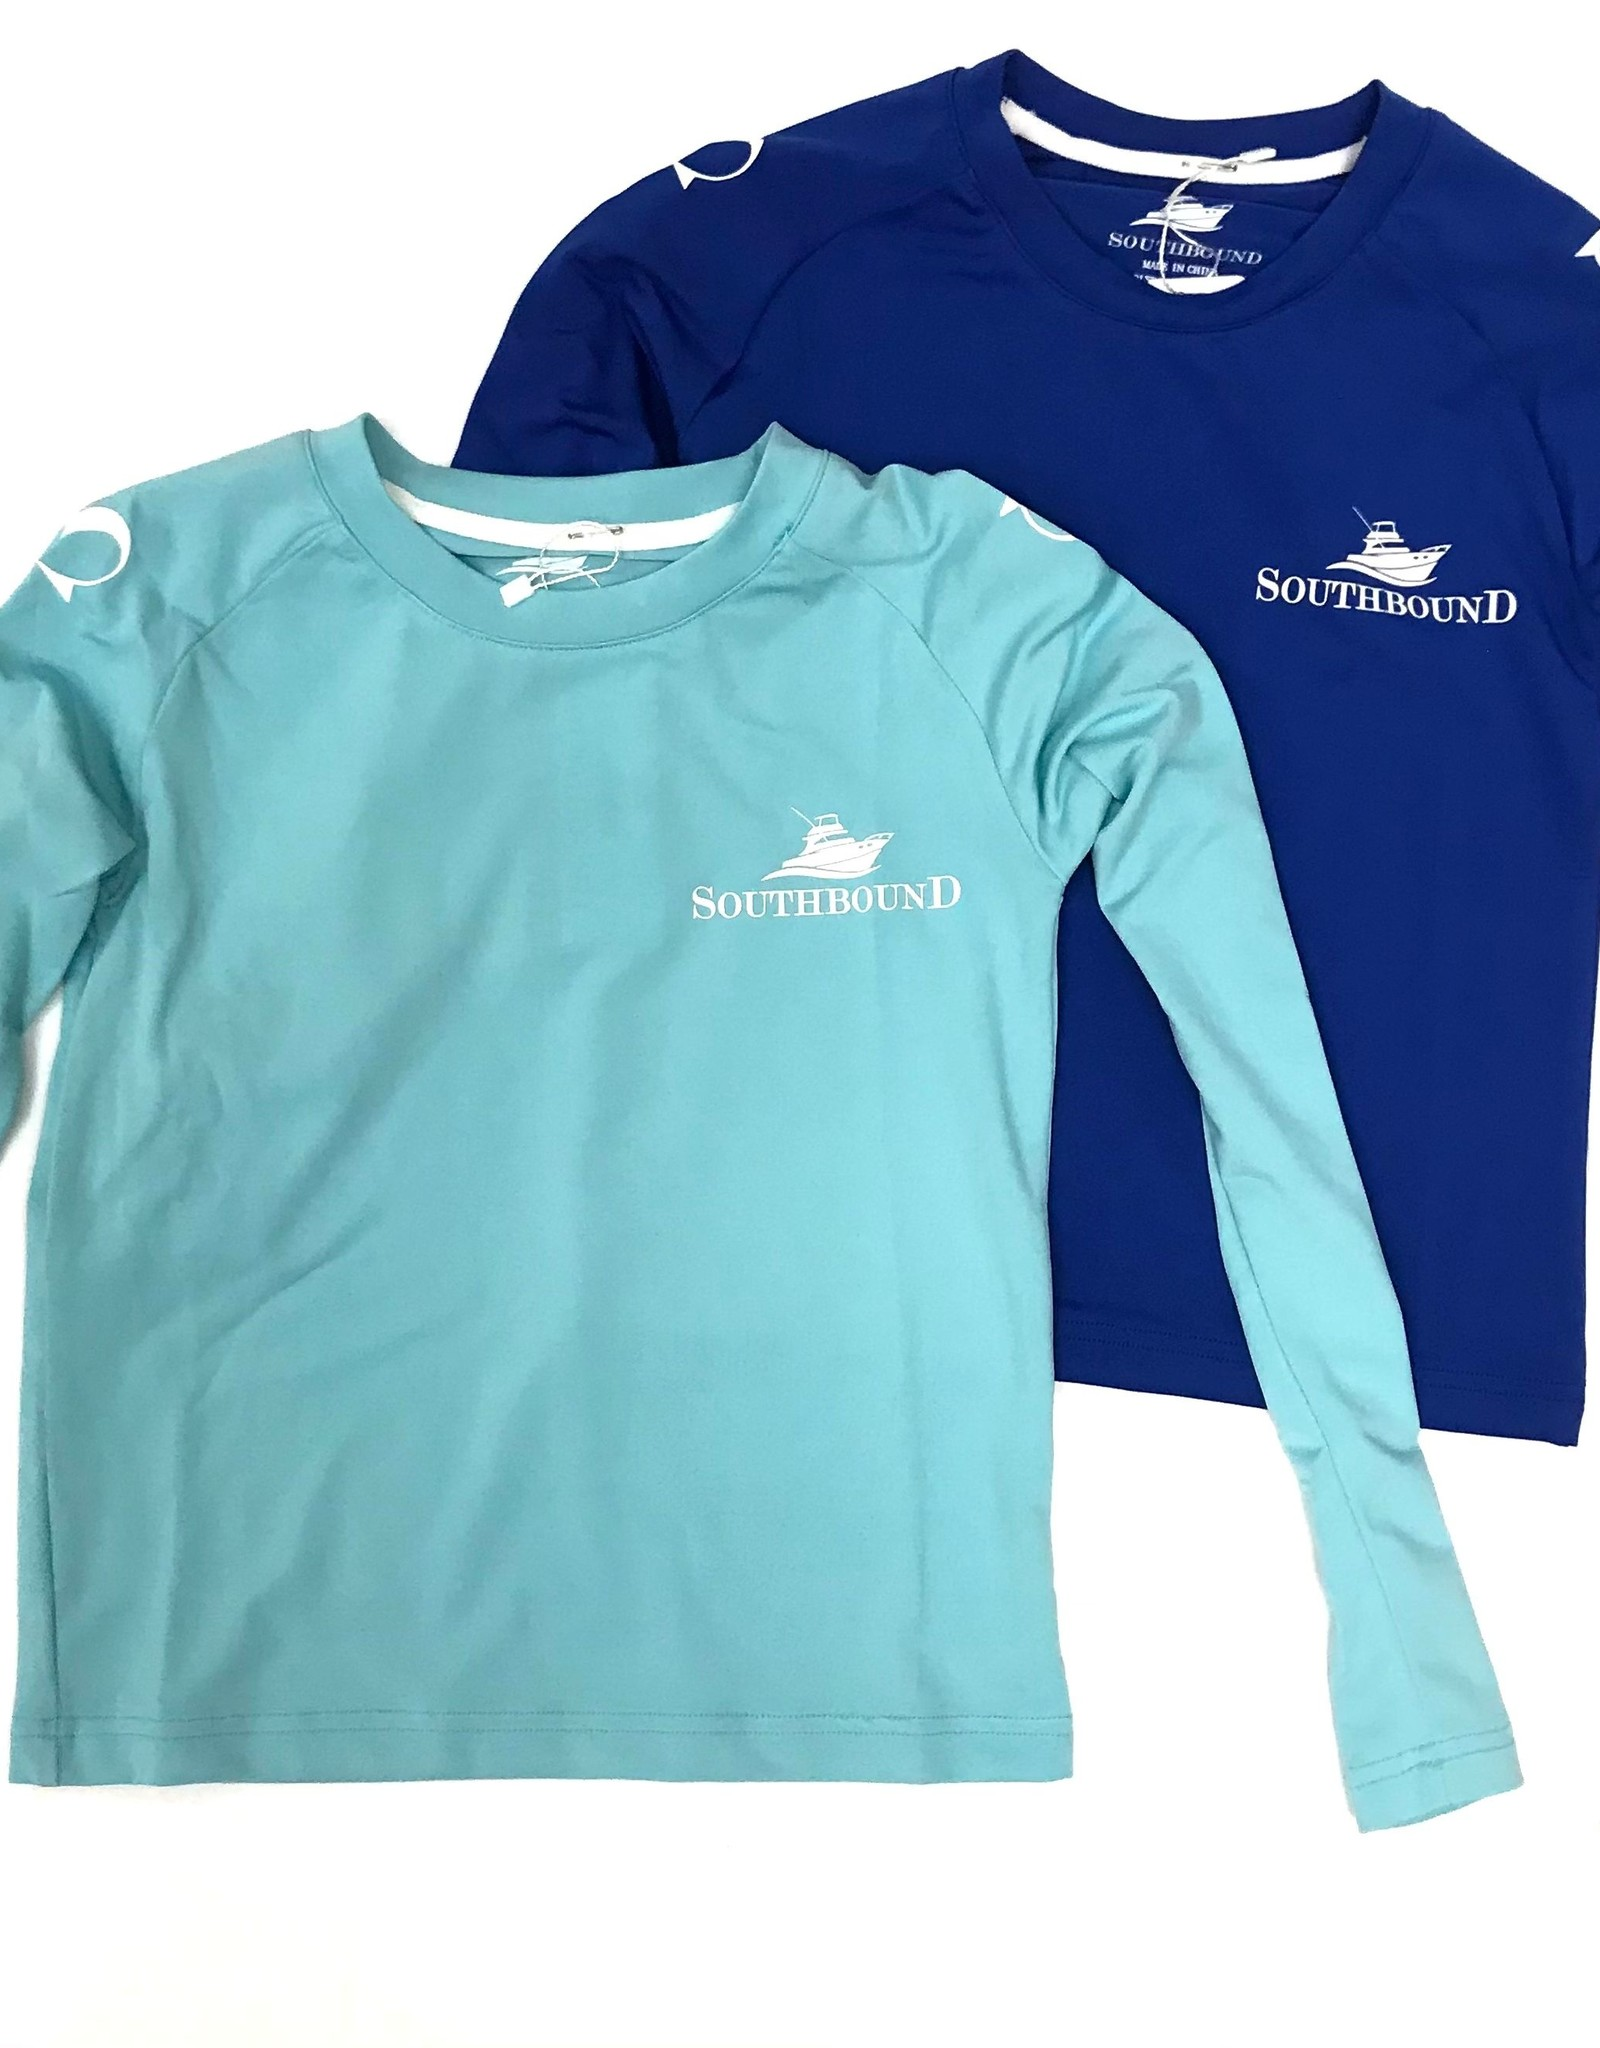 SouthBound Long Sleeve Logo Performance Tee